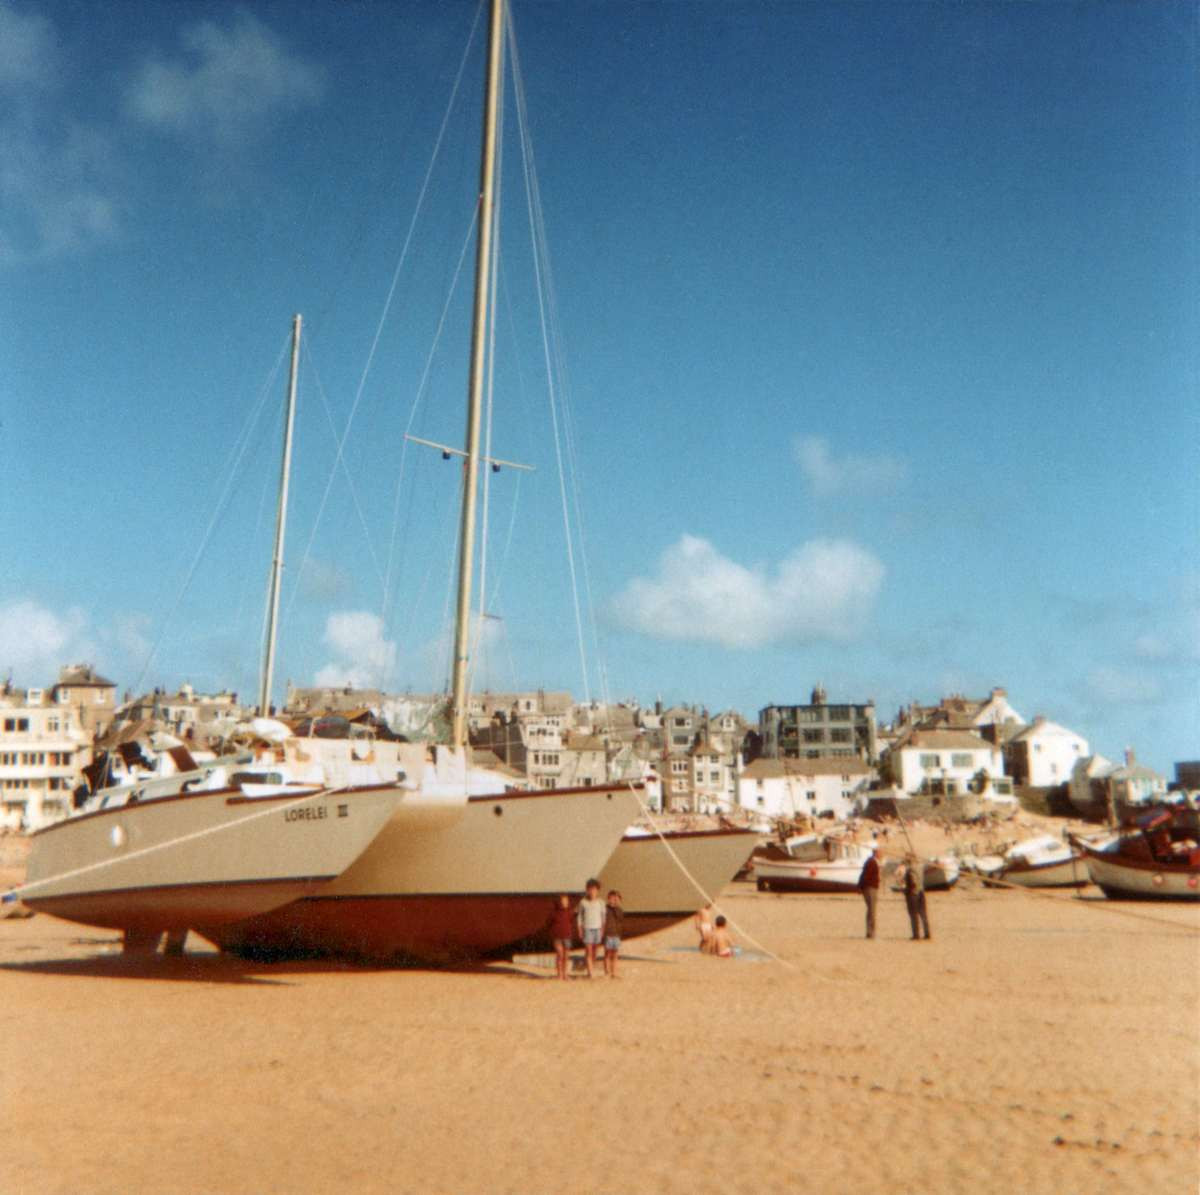 September 1st 1967, St Ives in Cornwall,  England our first stop on a trip around the world